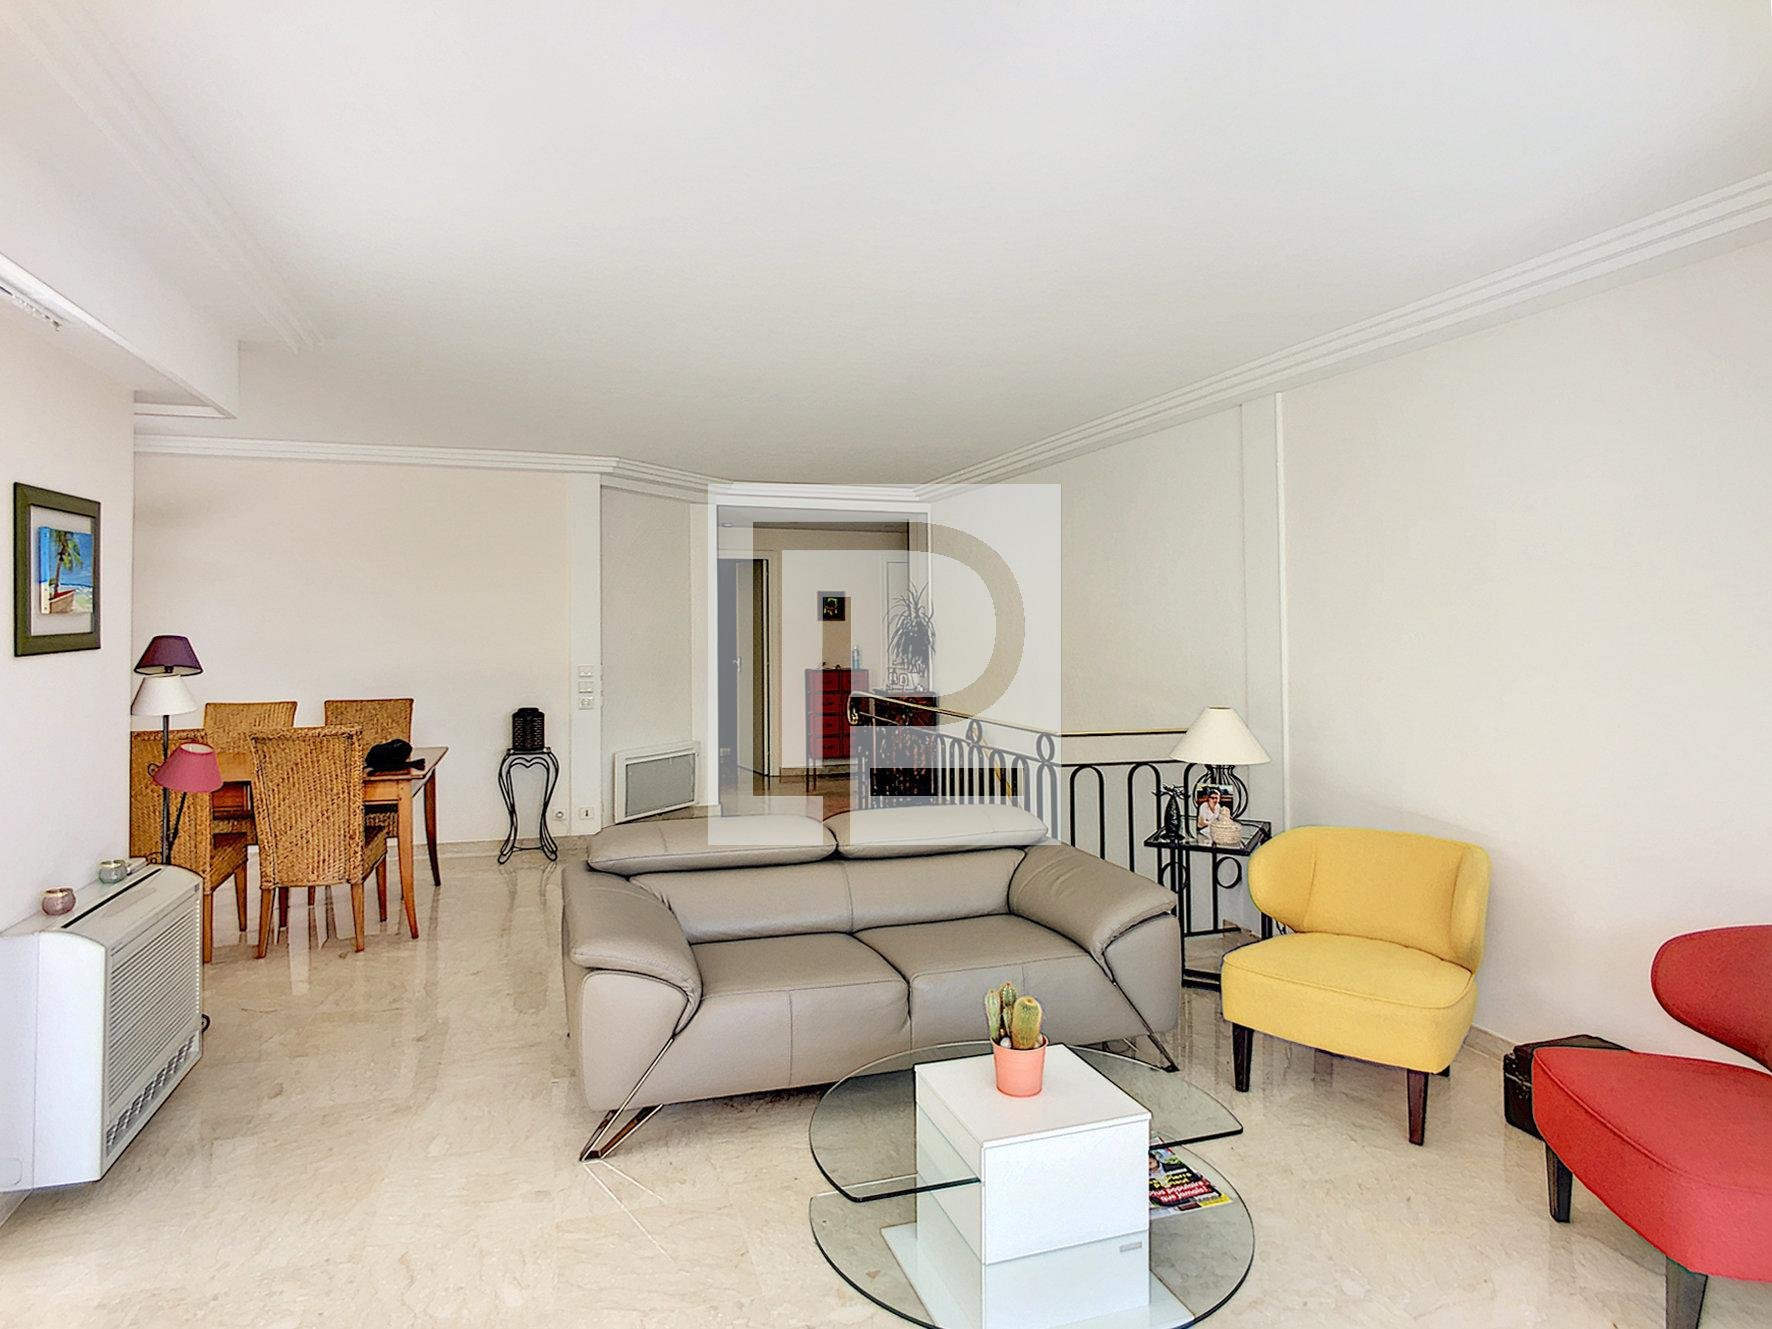 Le Cannet residential